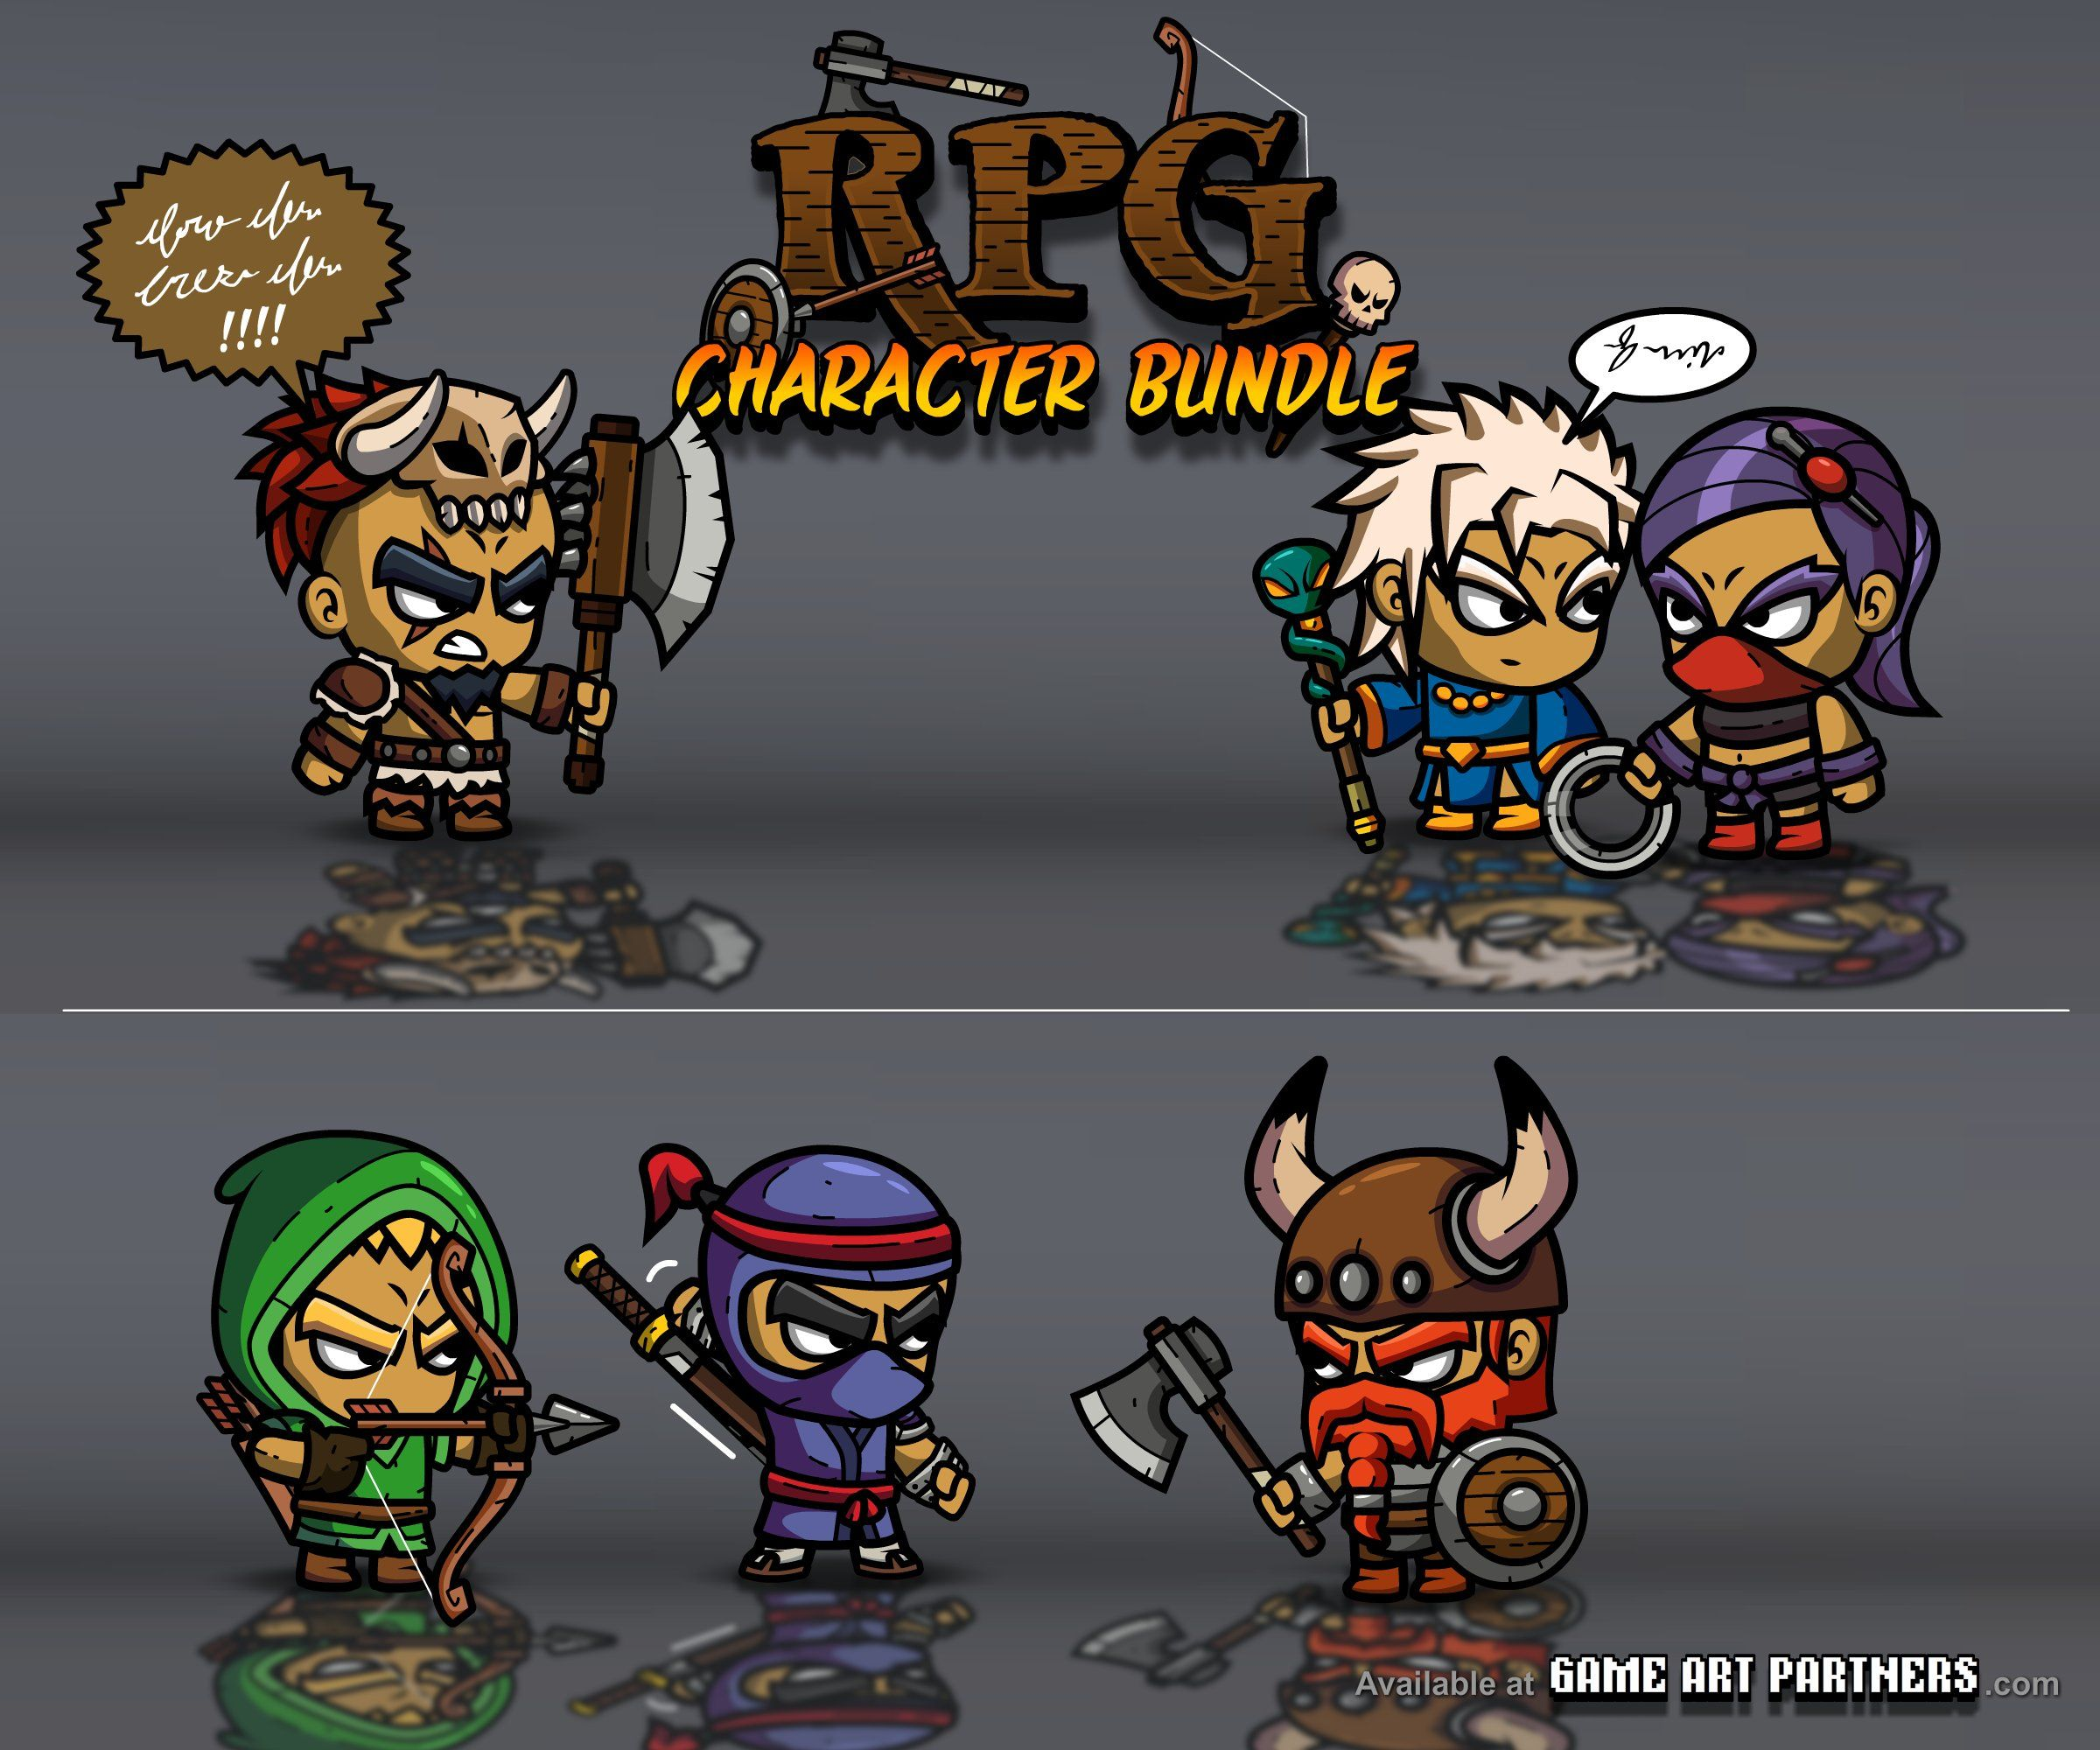 Pin by Game Art Partners on 2D Character Game Art | 2d game